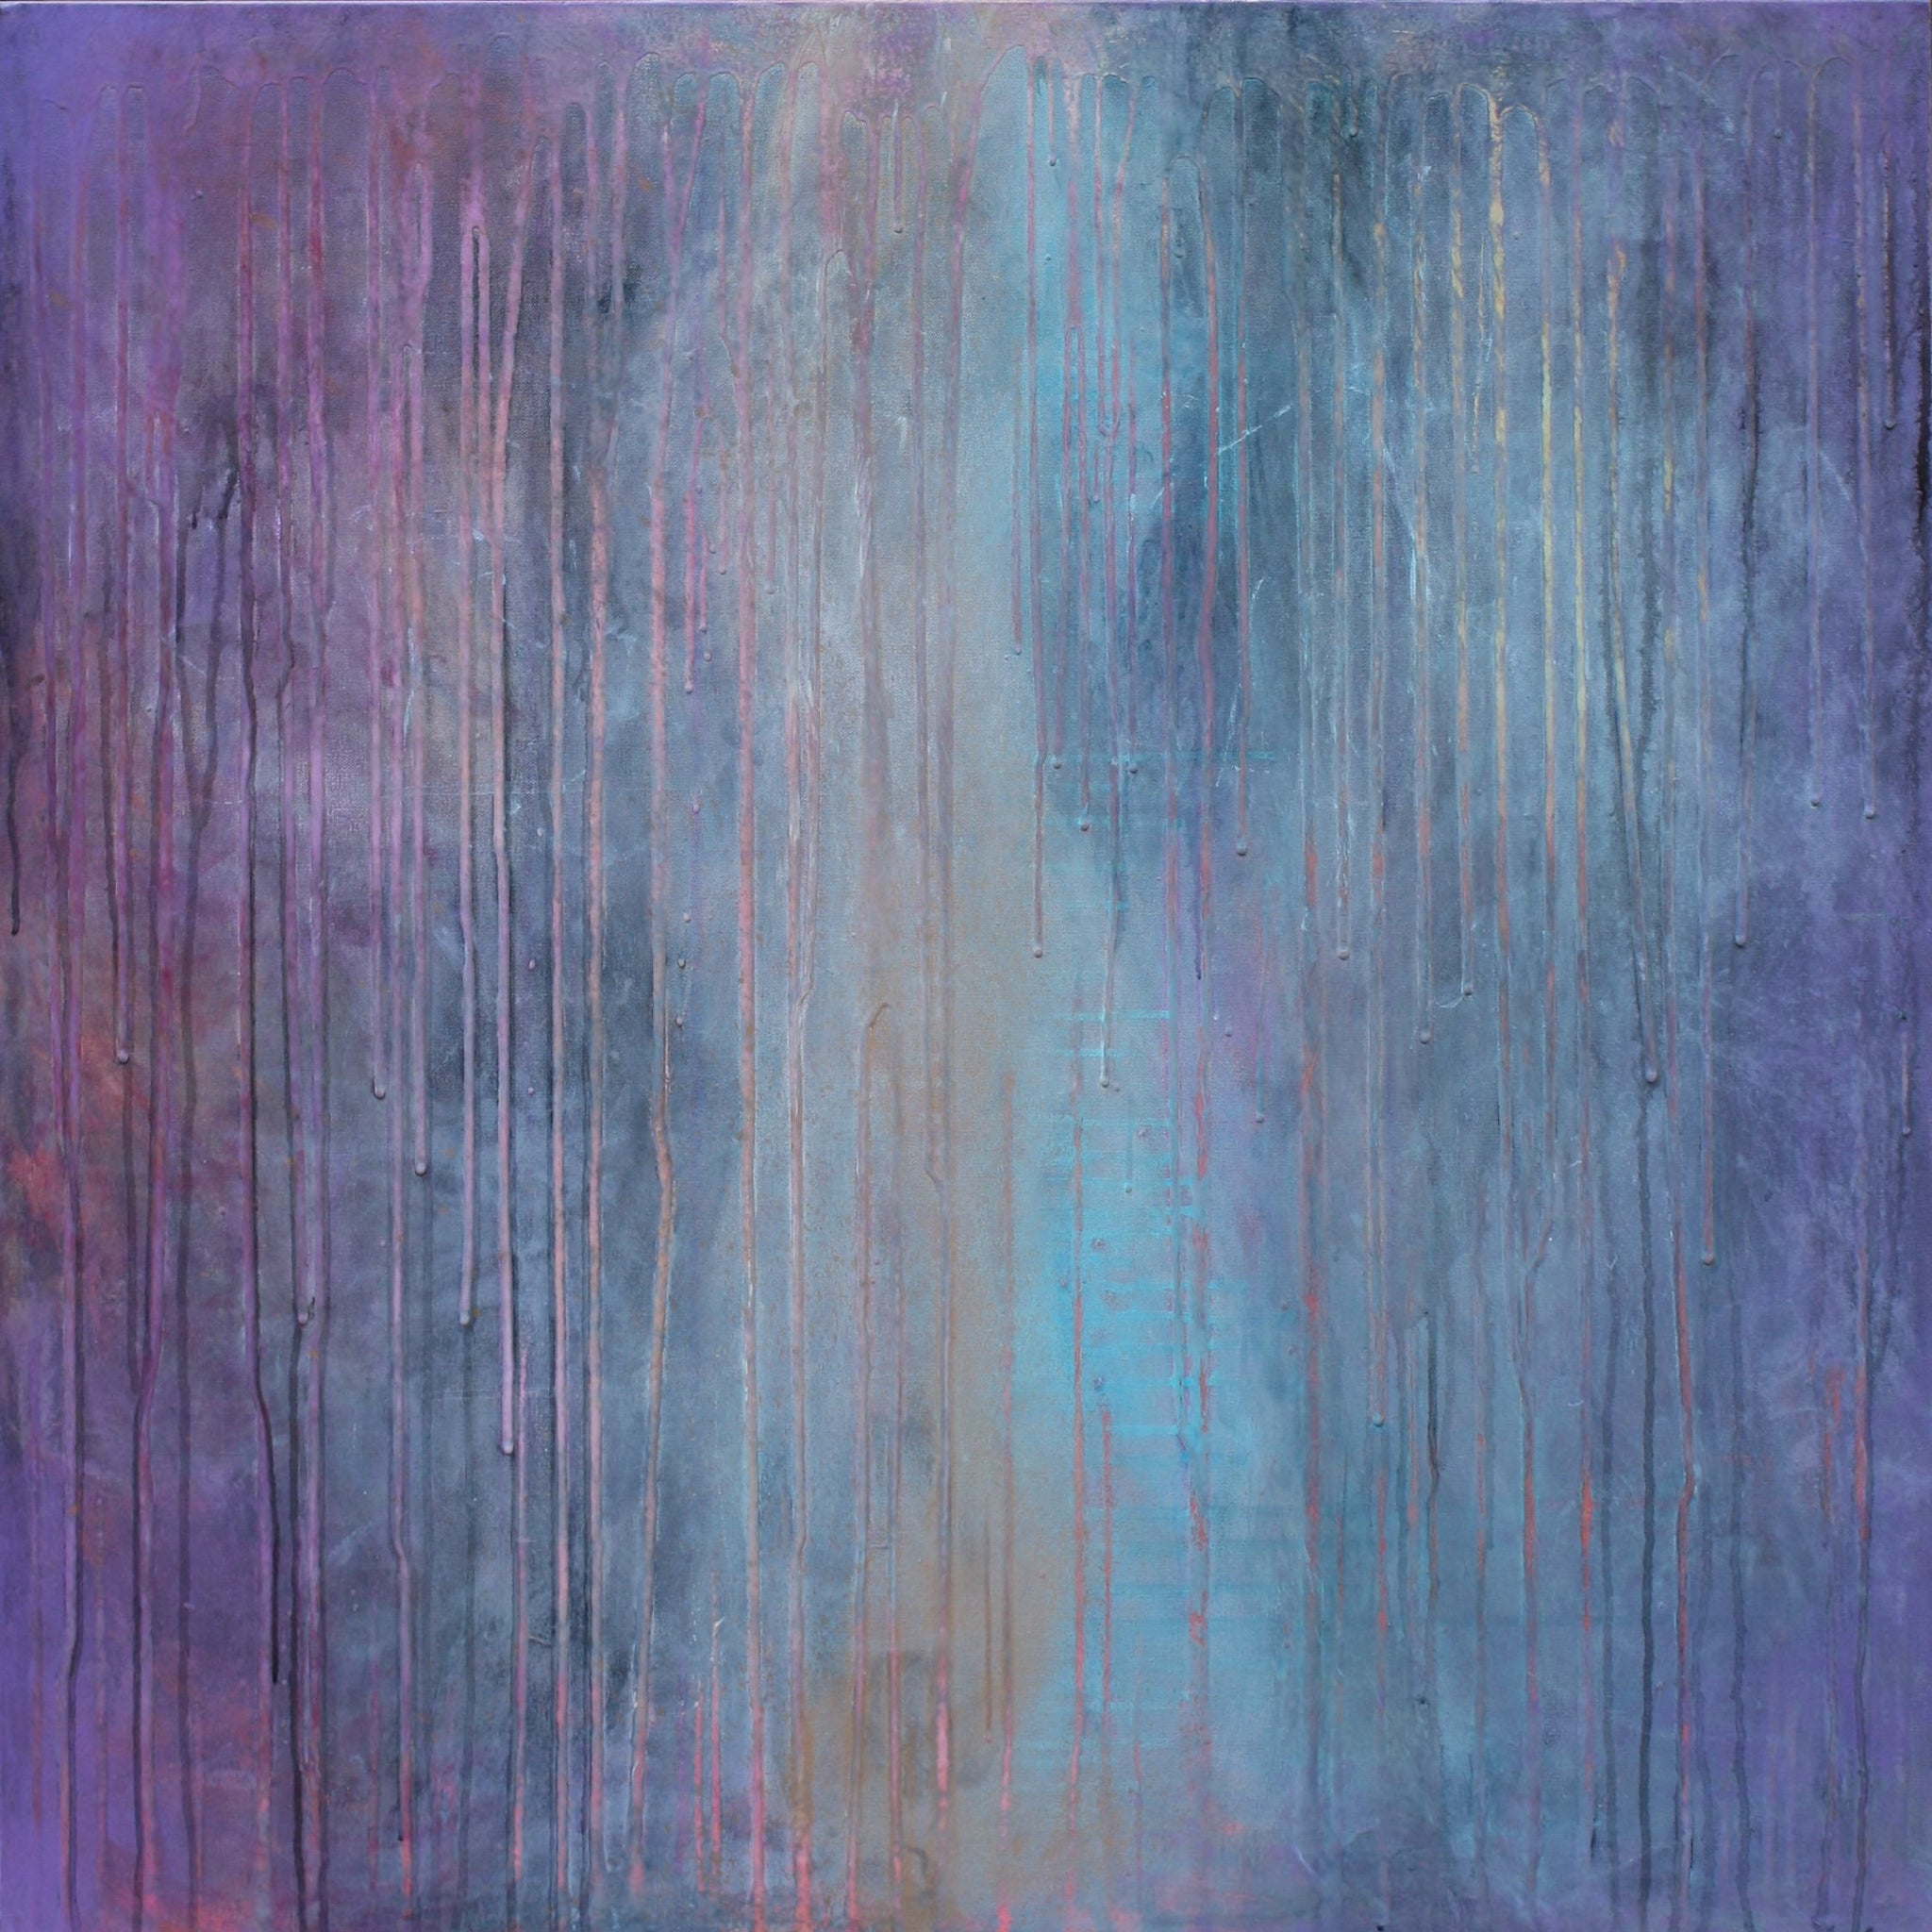 LAVENDER LUSH - mixed media surrealist abstract 36X36""